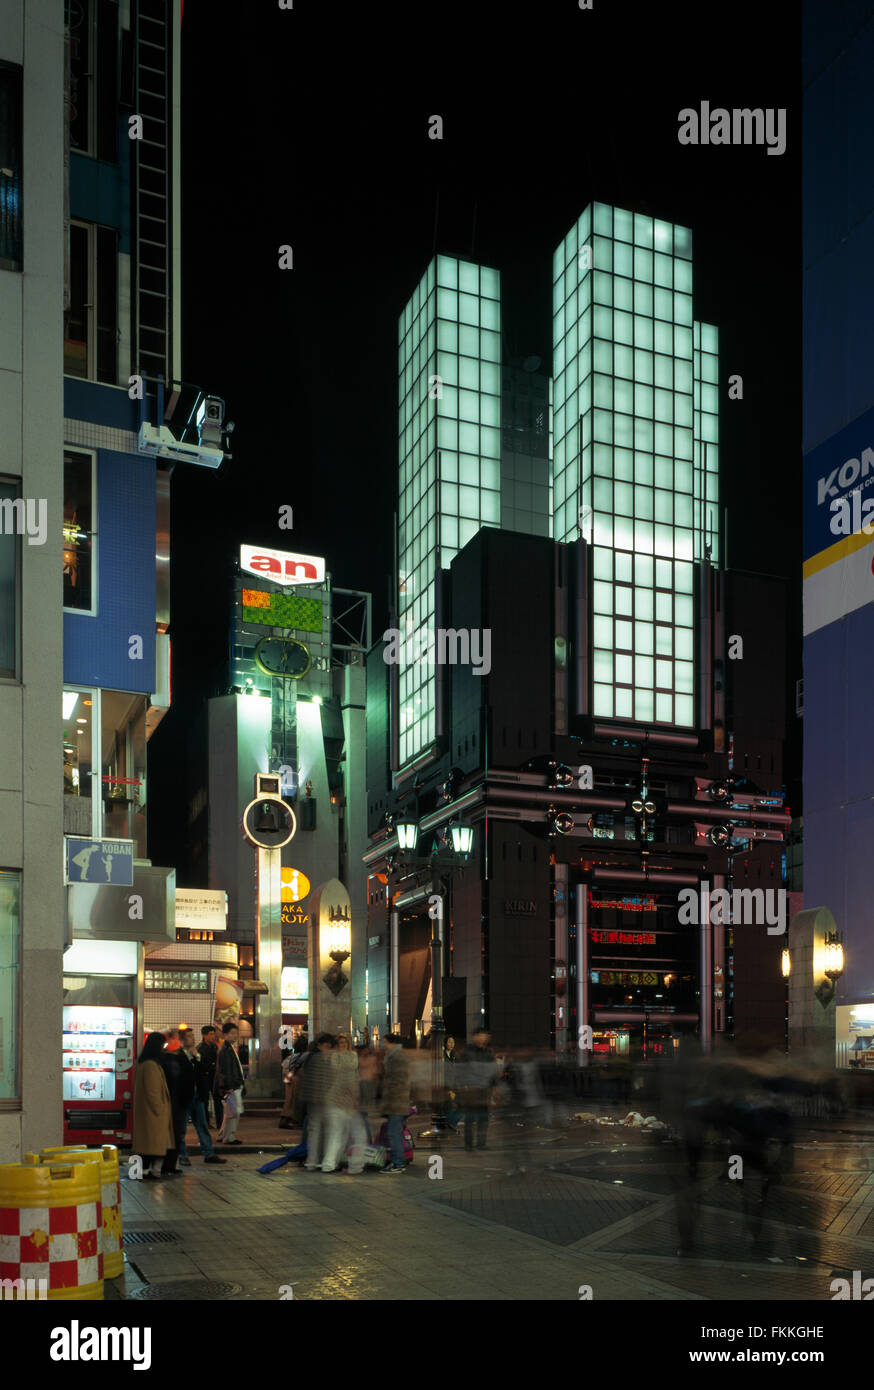 A street view of the Kirin Beer Building in Osaka. A night time view of the illuminated building. - Stock Image